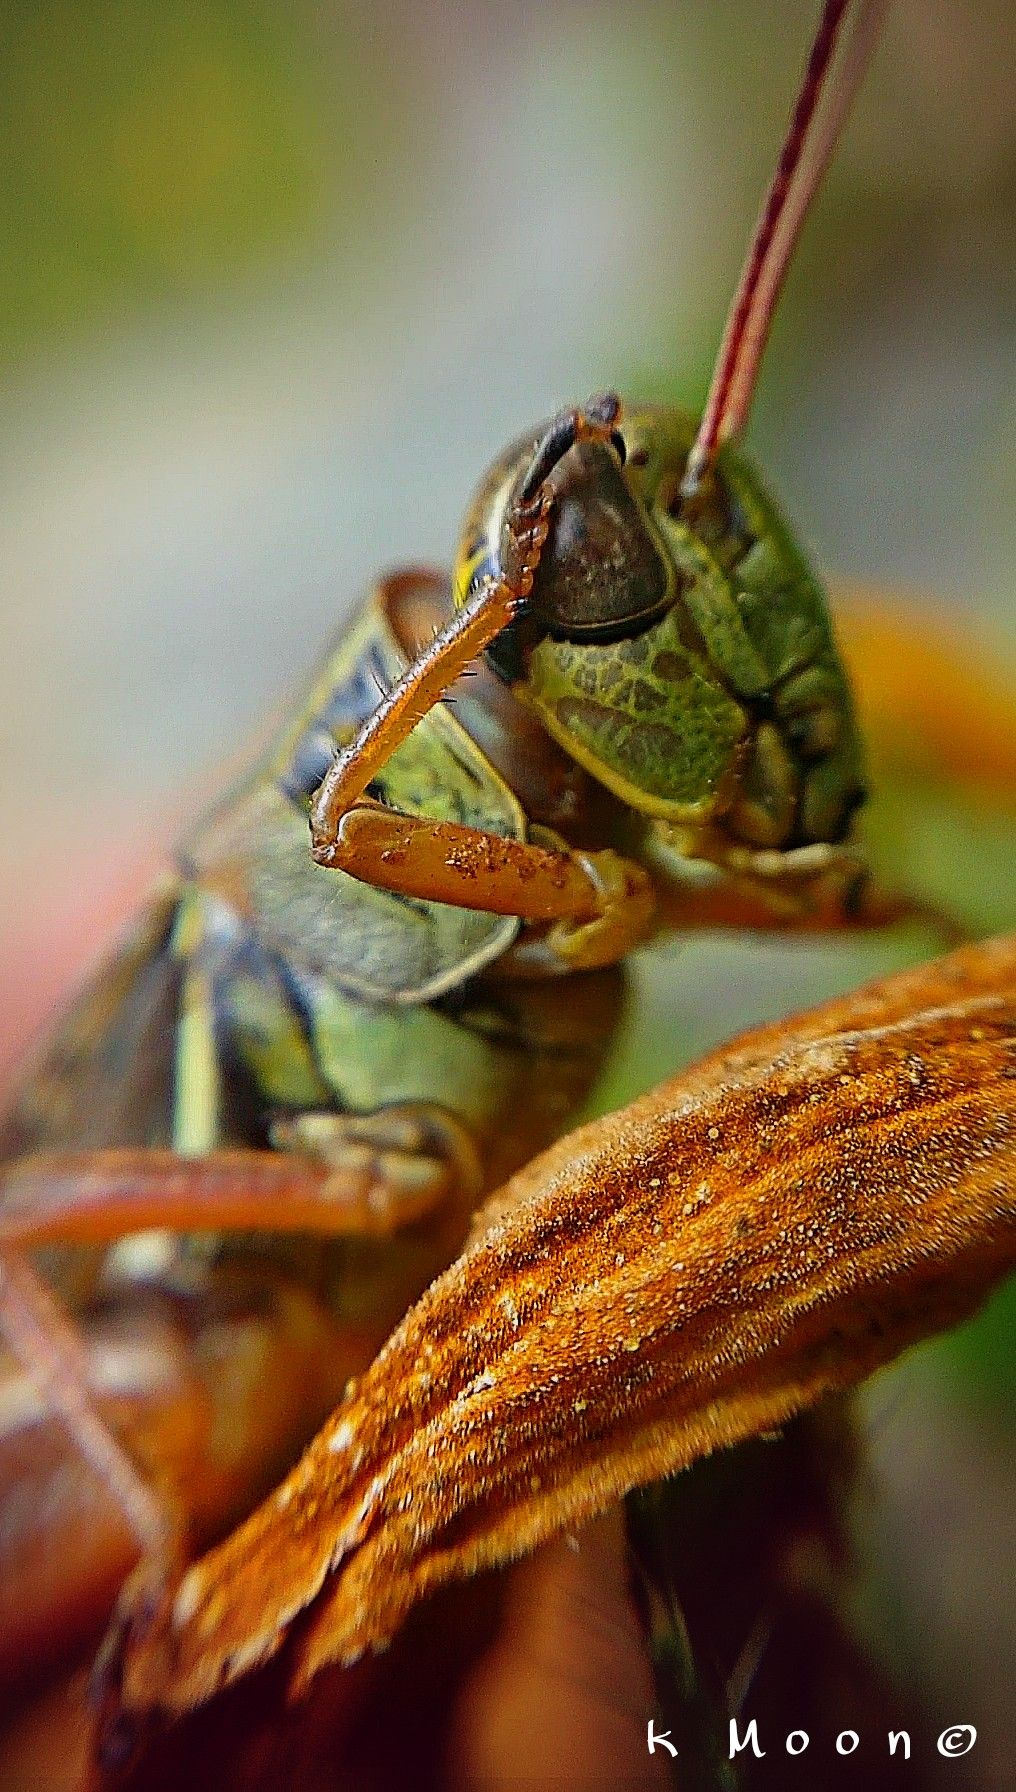 #colorful #colorsplash #photography #nature #summer #macro #closeup #insect #flower  #grasshopper